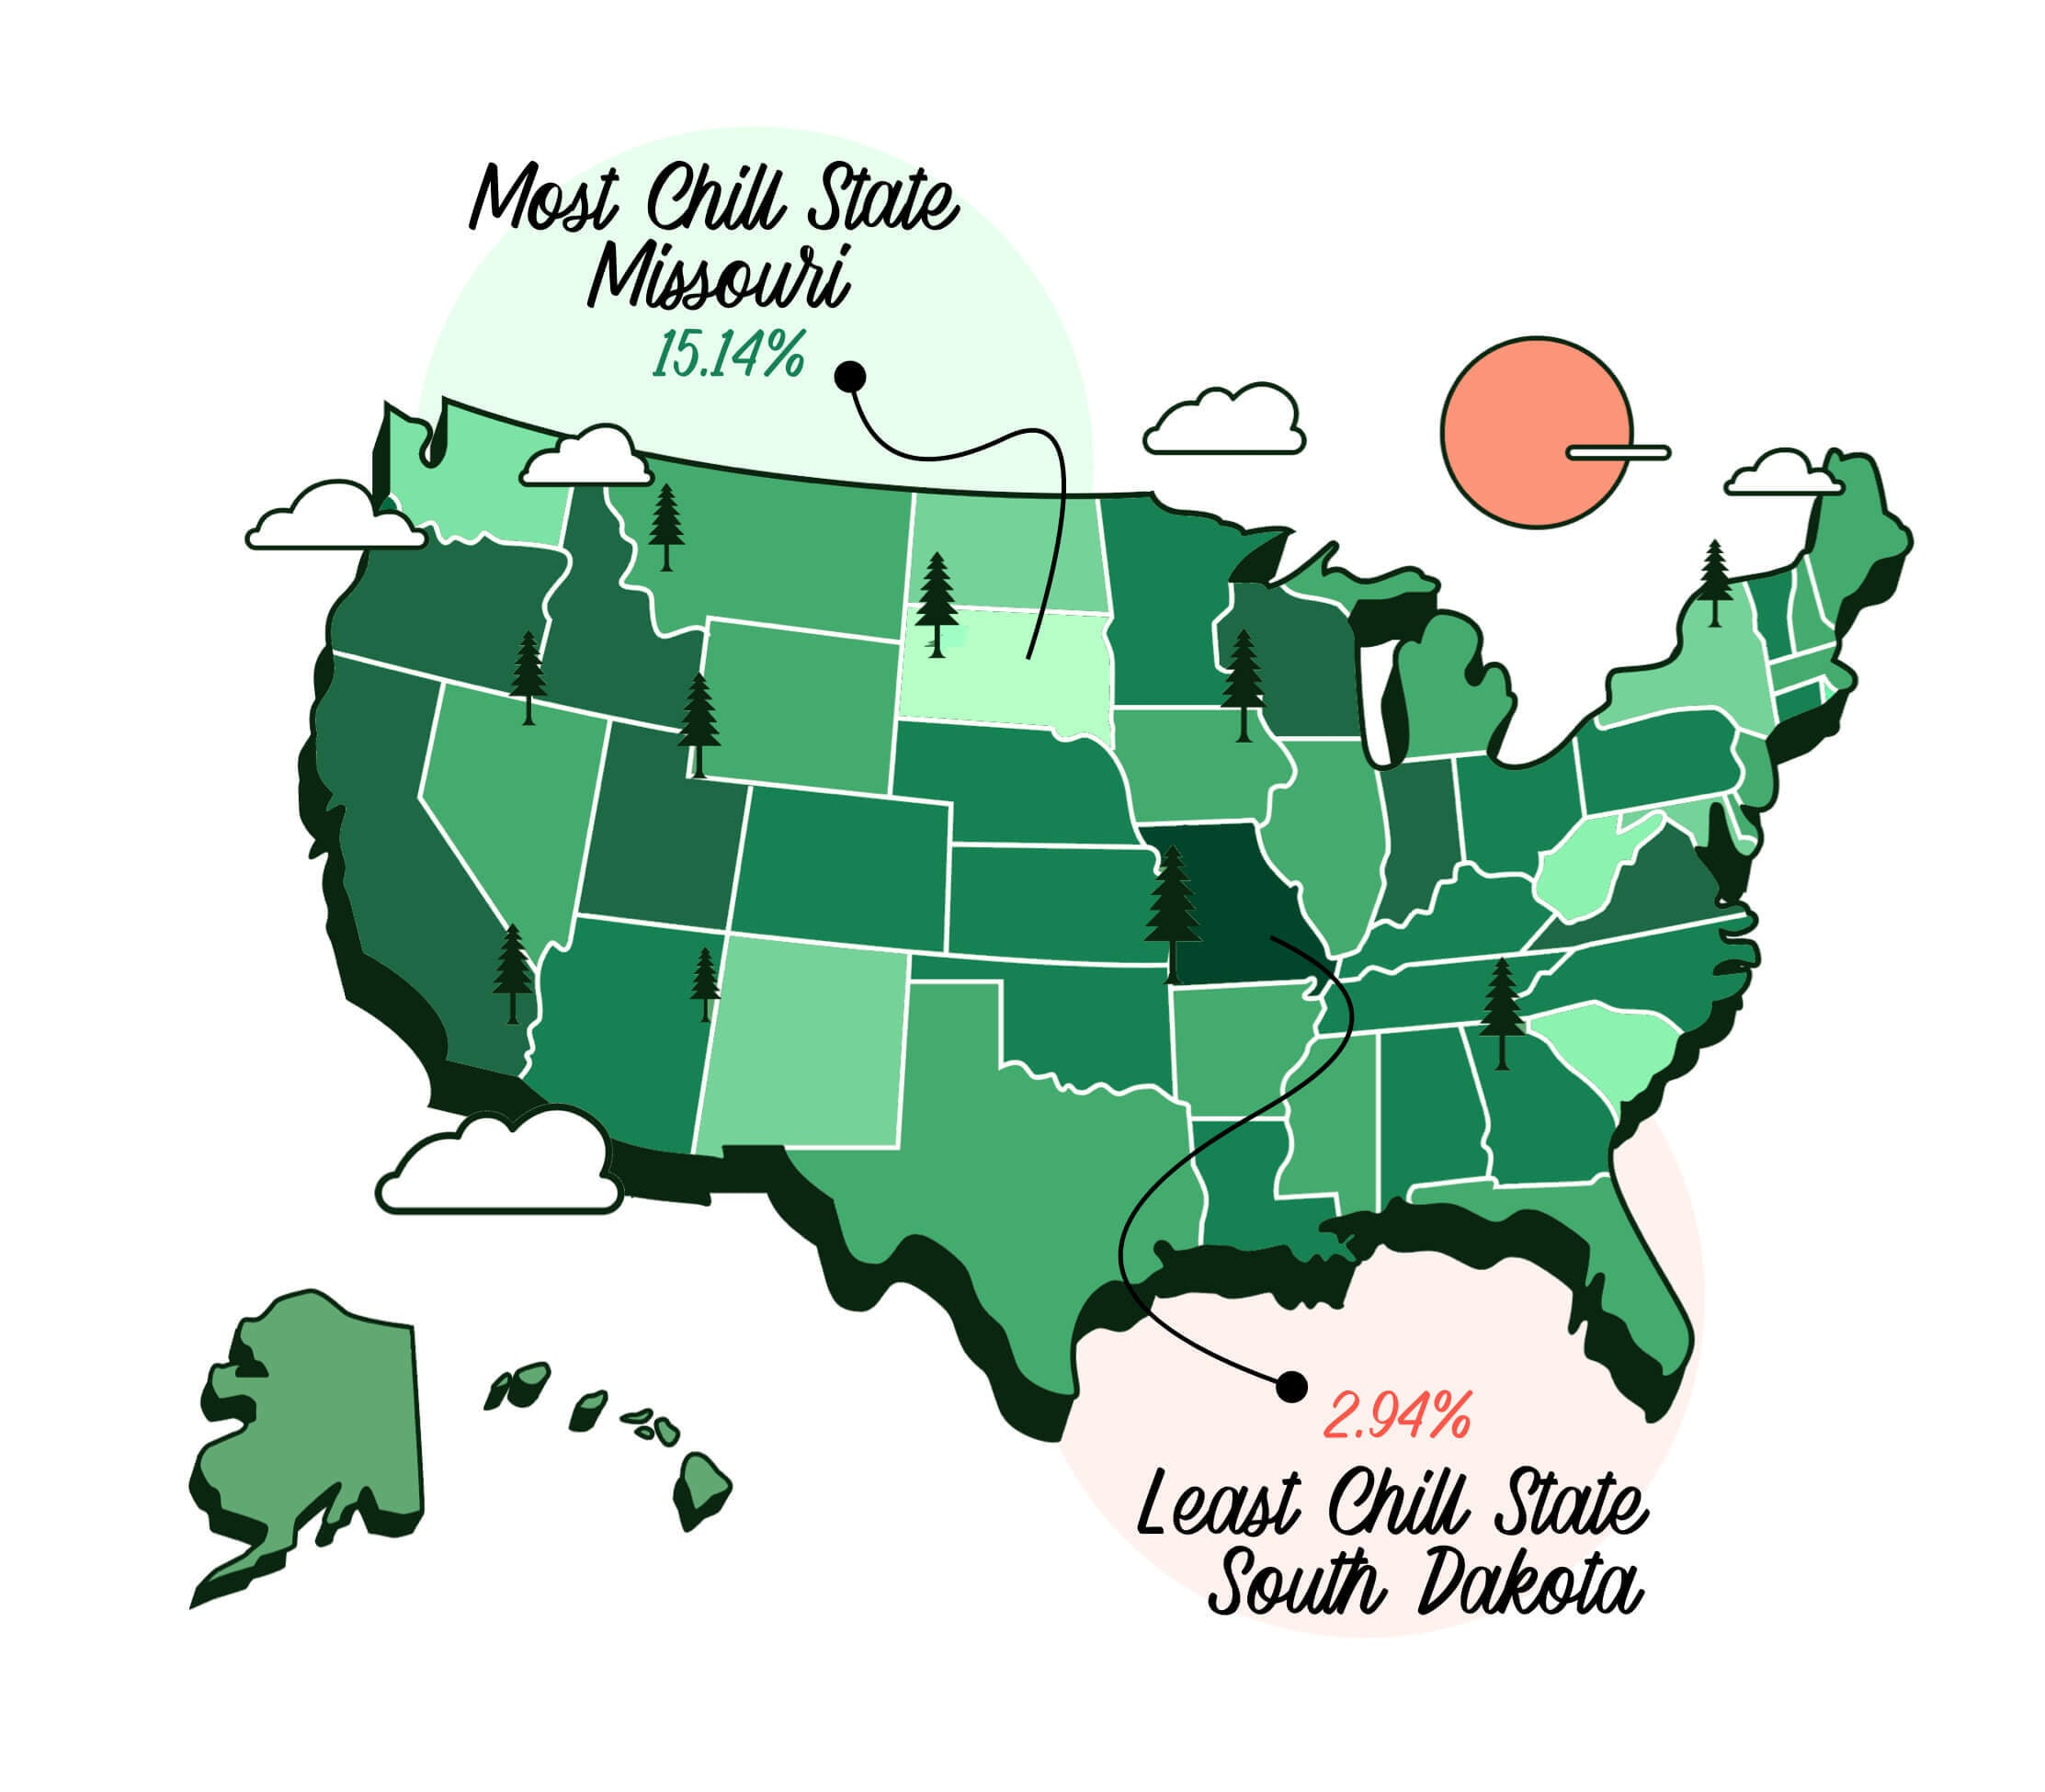 Most chill states